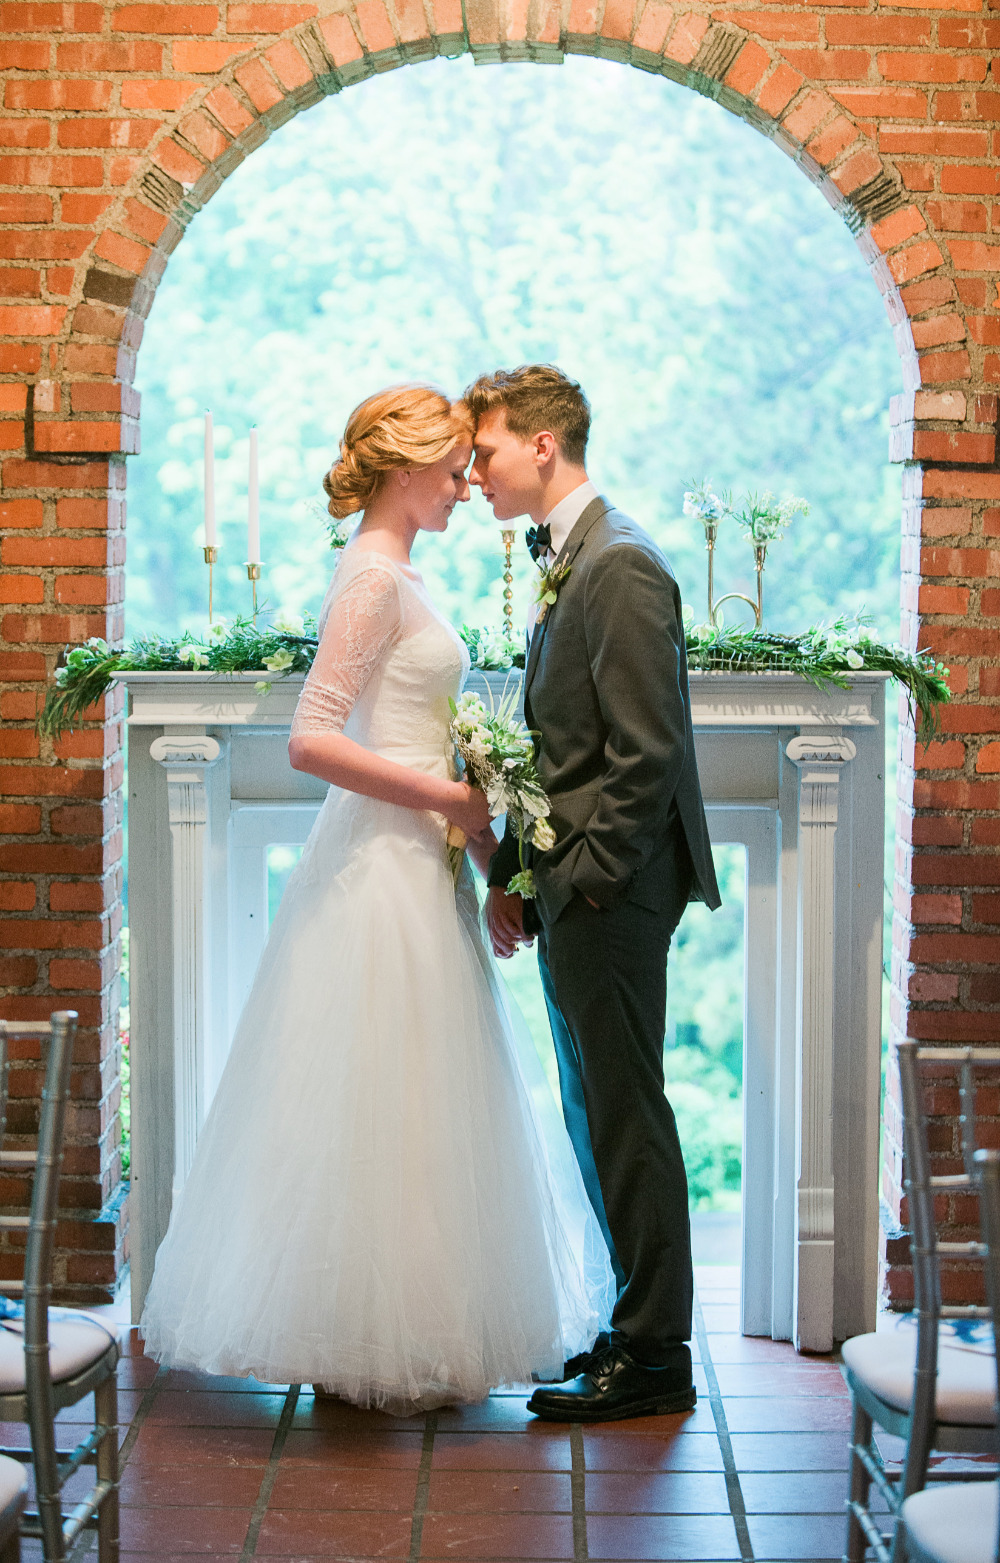 beautiful wedding ceremony with brick archway